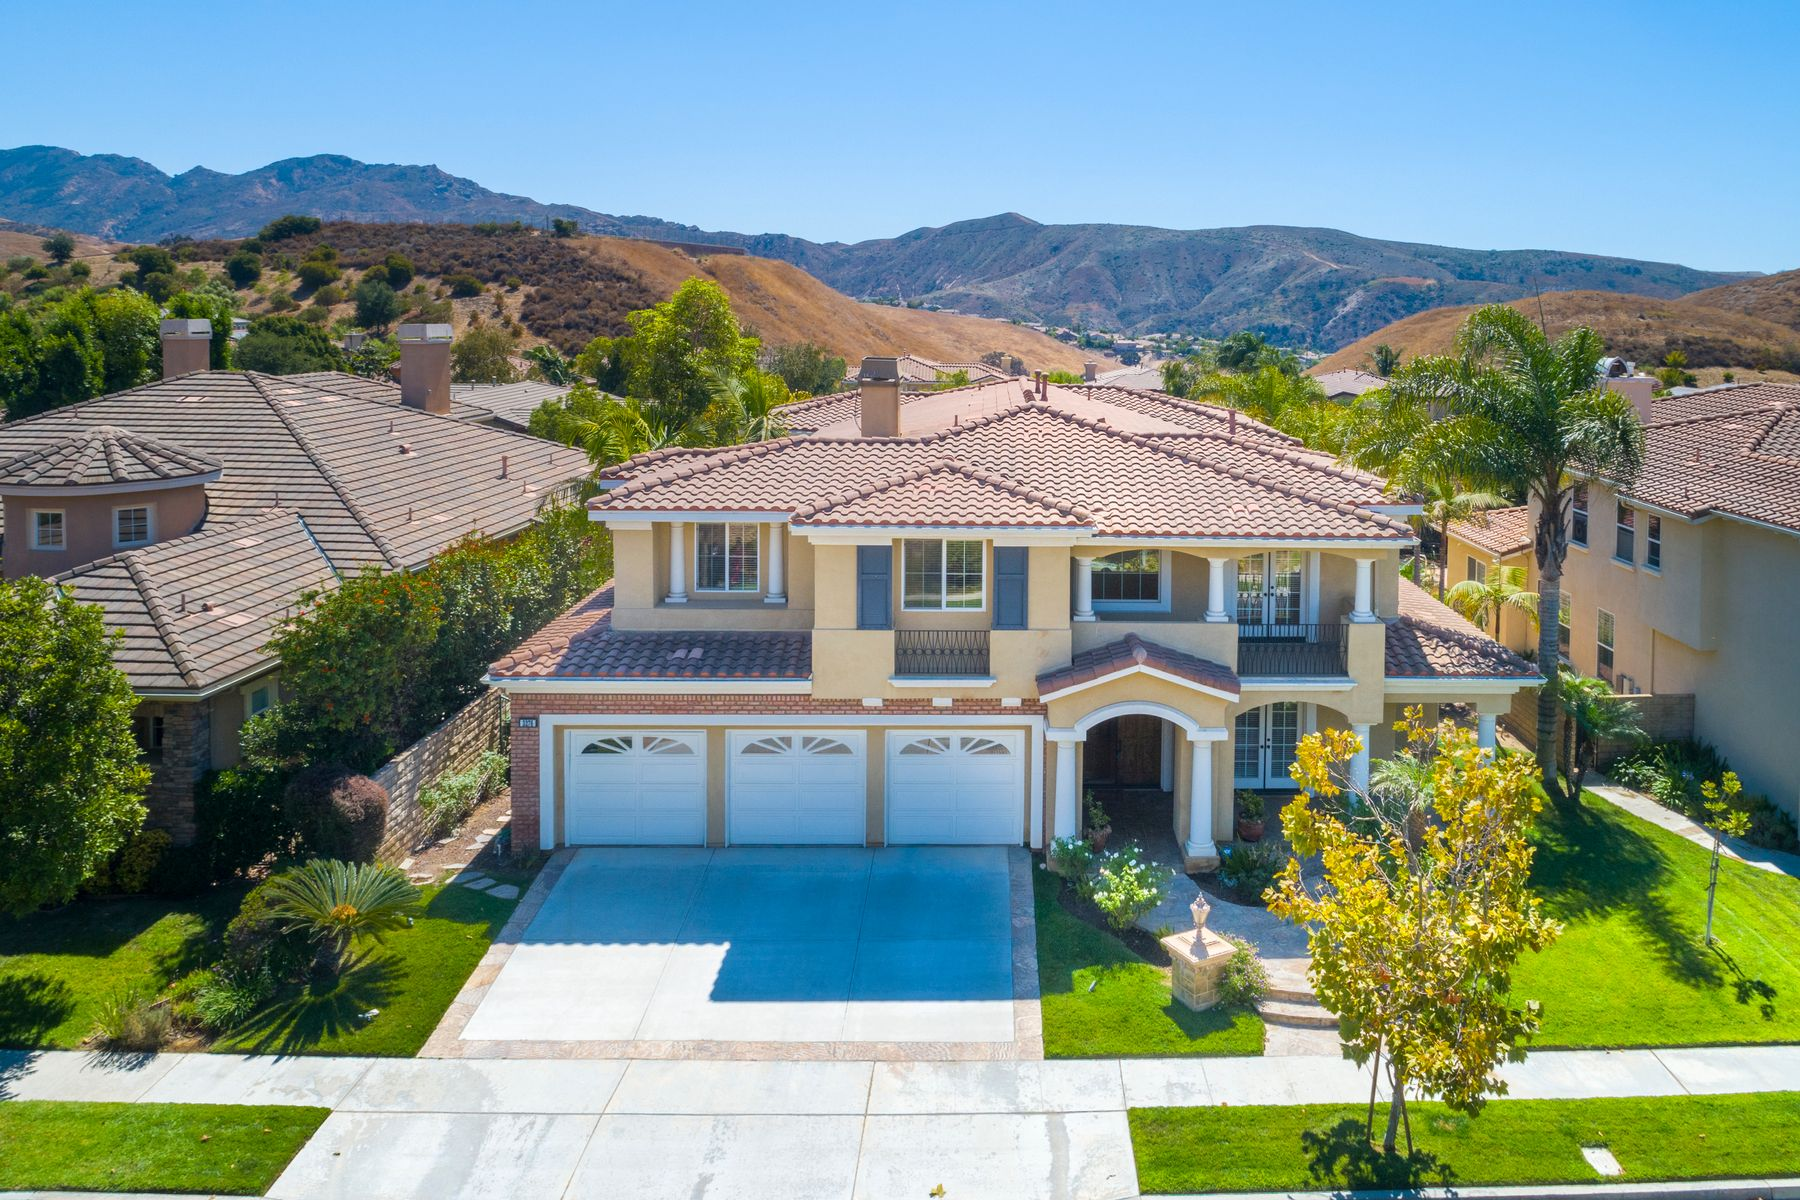 Single Family Homes for Sale at Guard Gated Thousand Oaks Home 3276 Willow Canyon Street Thousand Oaks, California 91362 United States